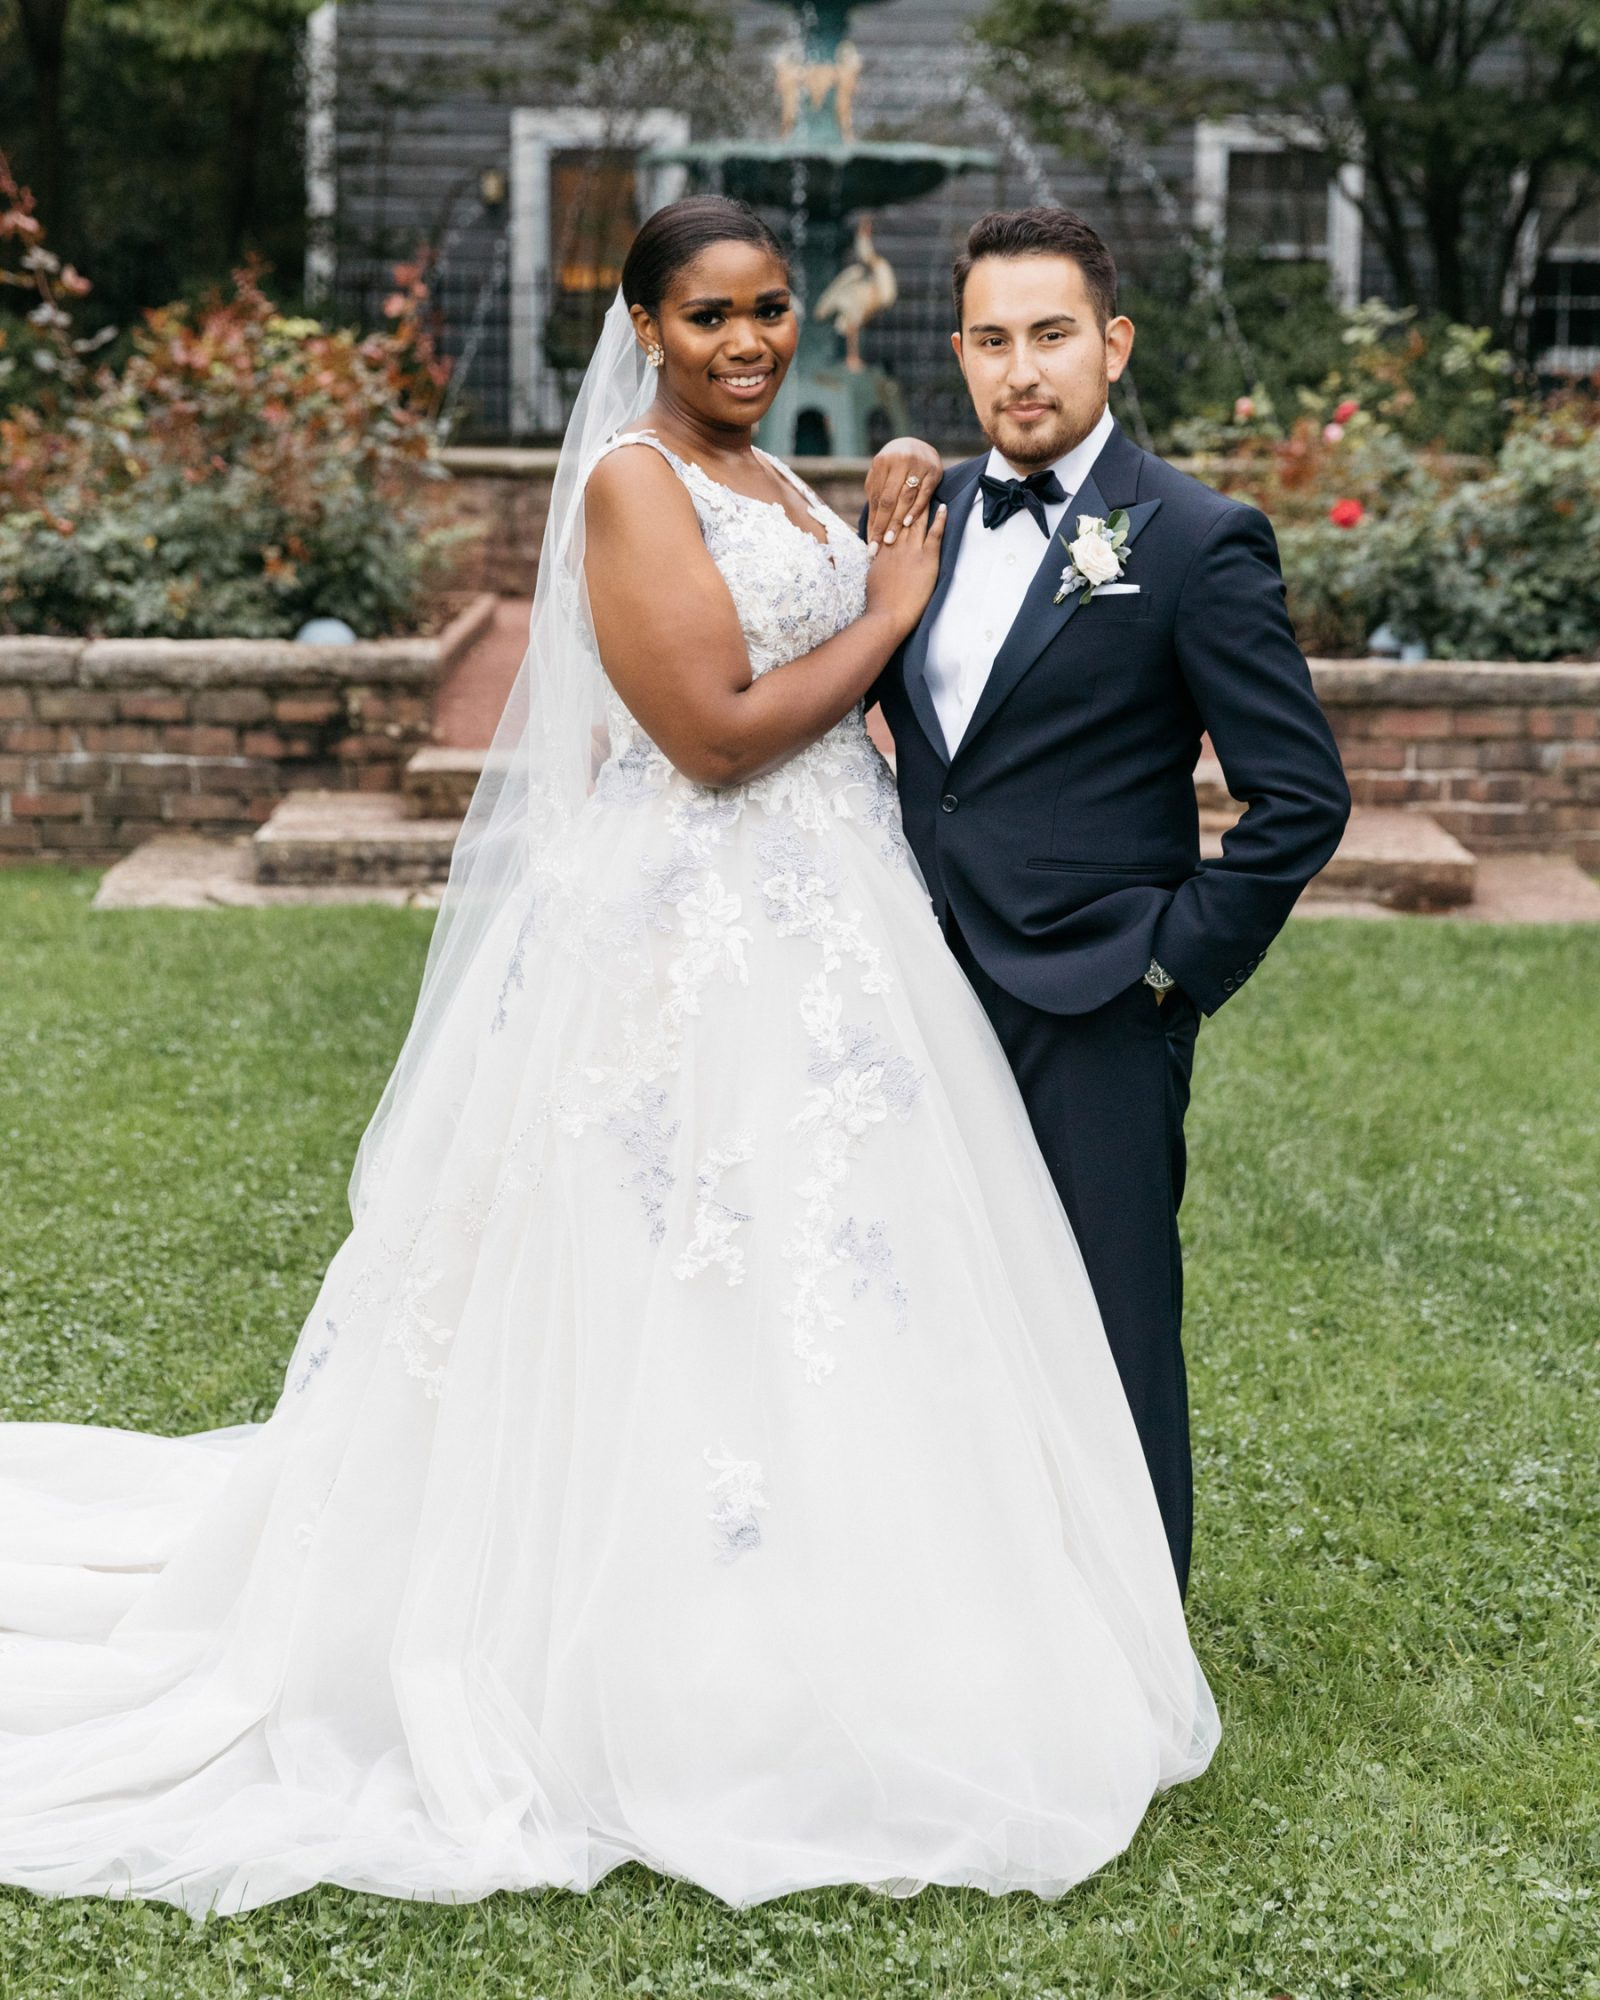 This Duo's New York Fashion Week-Themed Wedding Took Place Against the Chicago Skyline